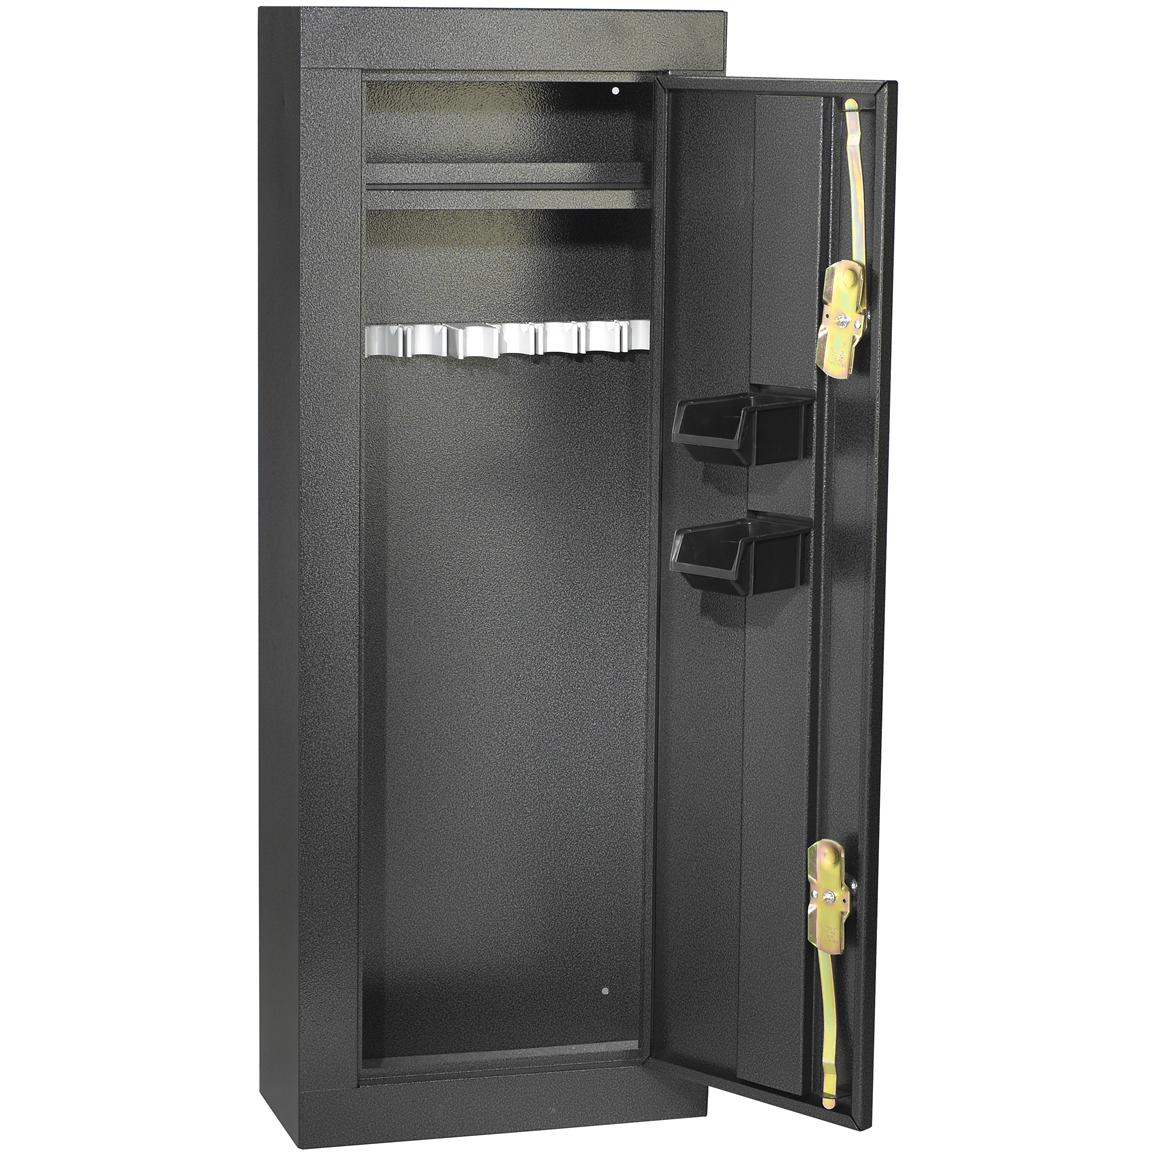 Gun Security Cabinet >> Homak 8 Gun Security Cabinet 163668 Gun Cabinets Racks At